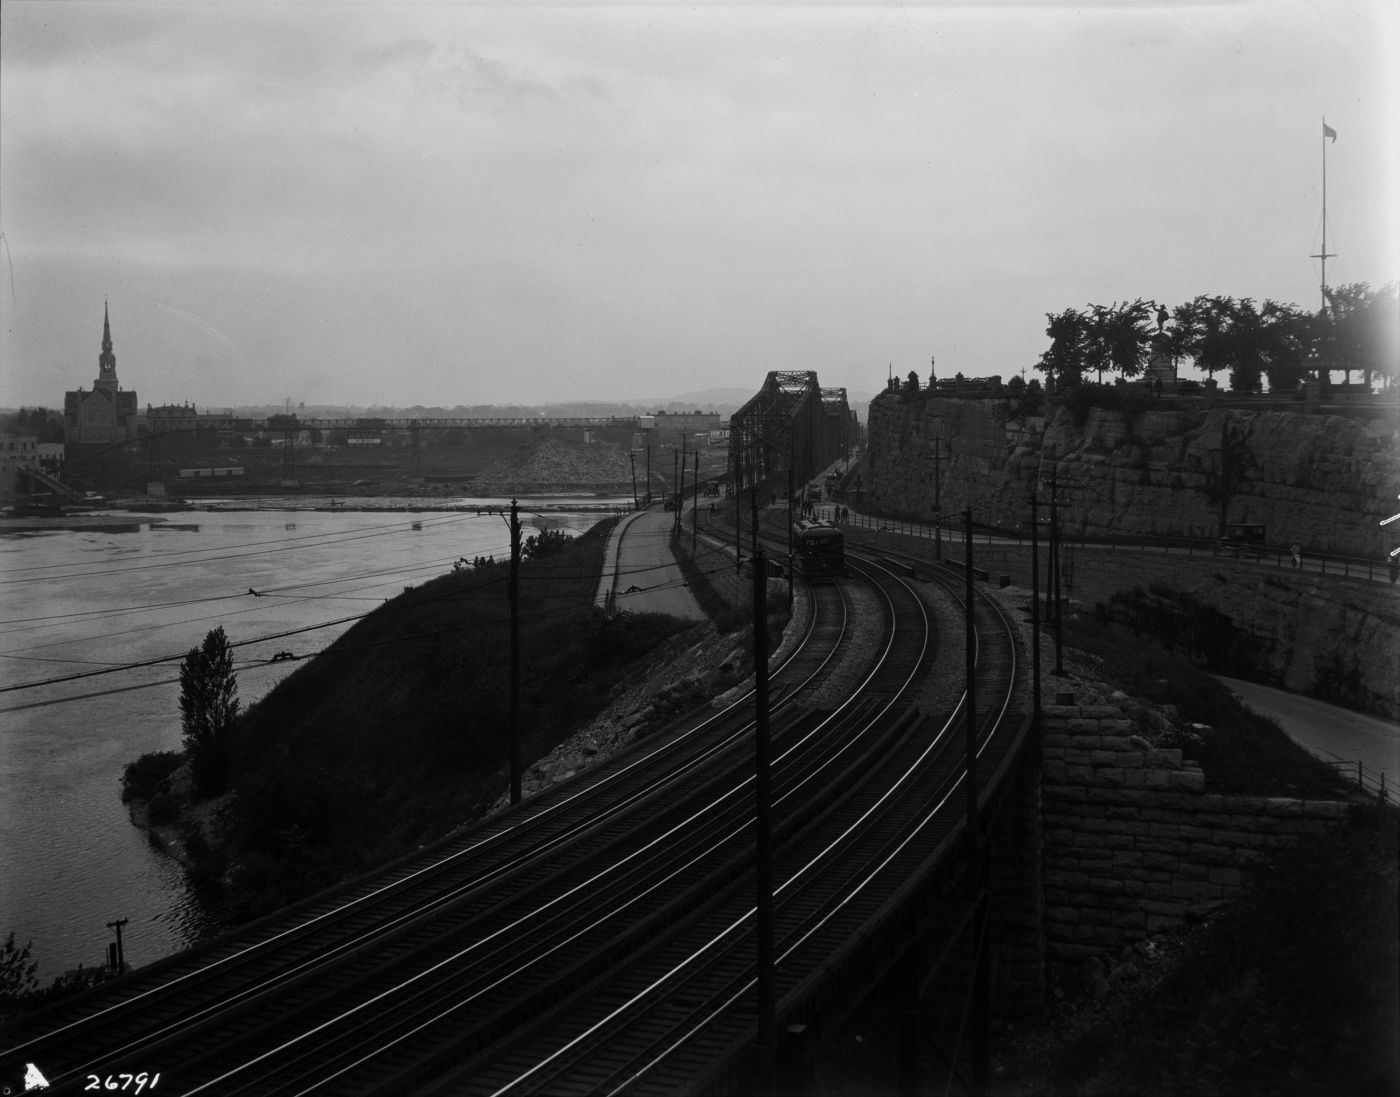 Black and white photograph of a riverside landscape. In the foreground, three railways lead to an iron bridge. On the other side of the river, an industrial landscape dominated by an imposing church.